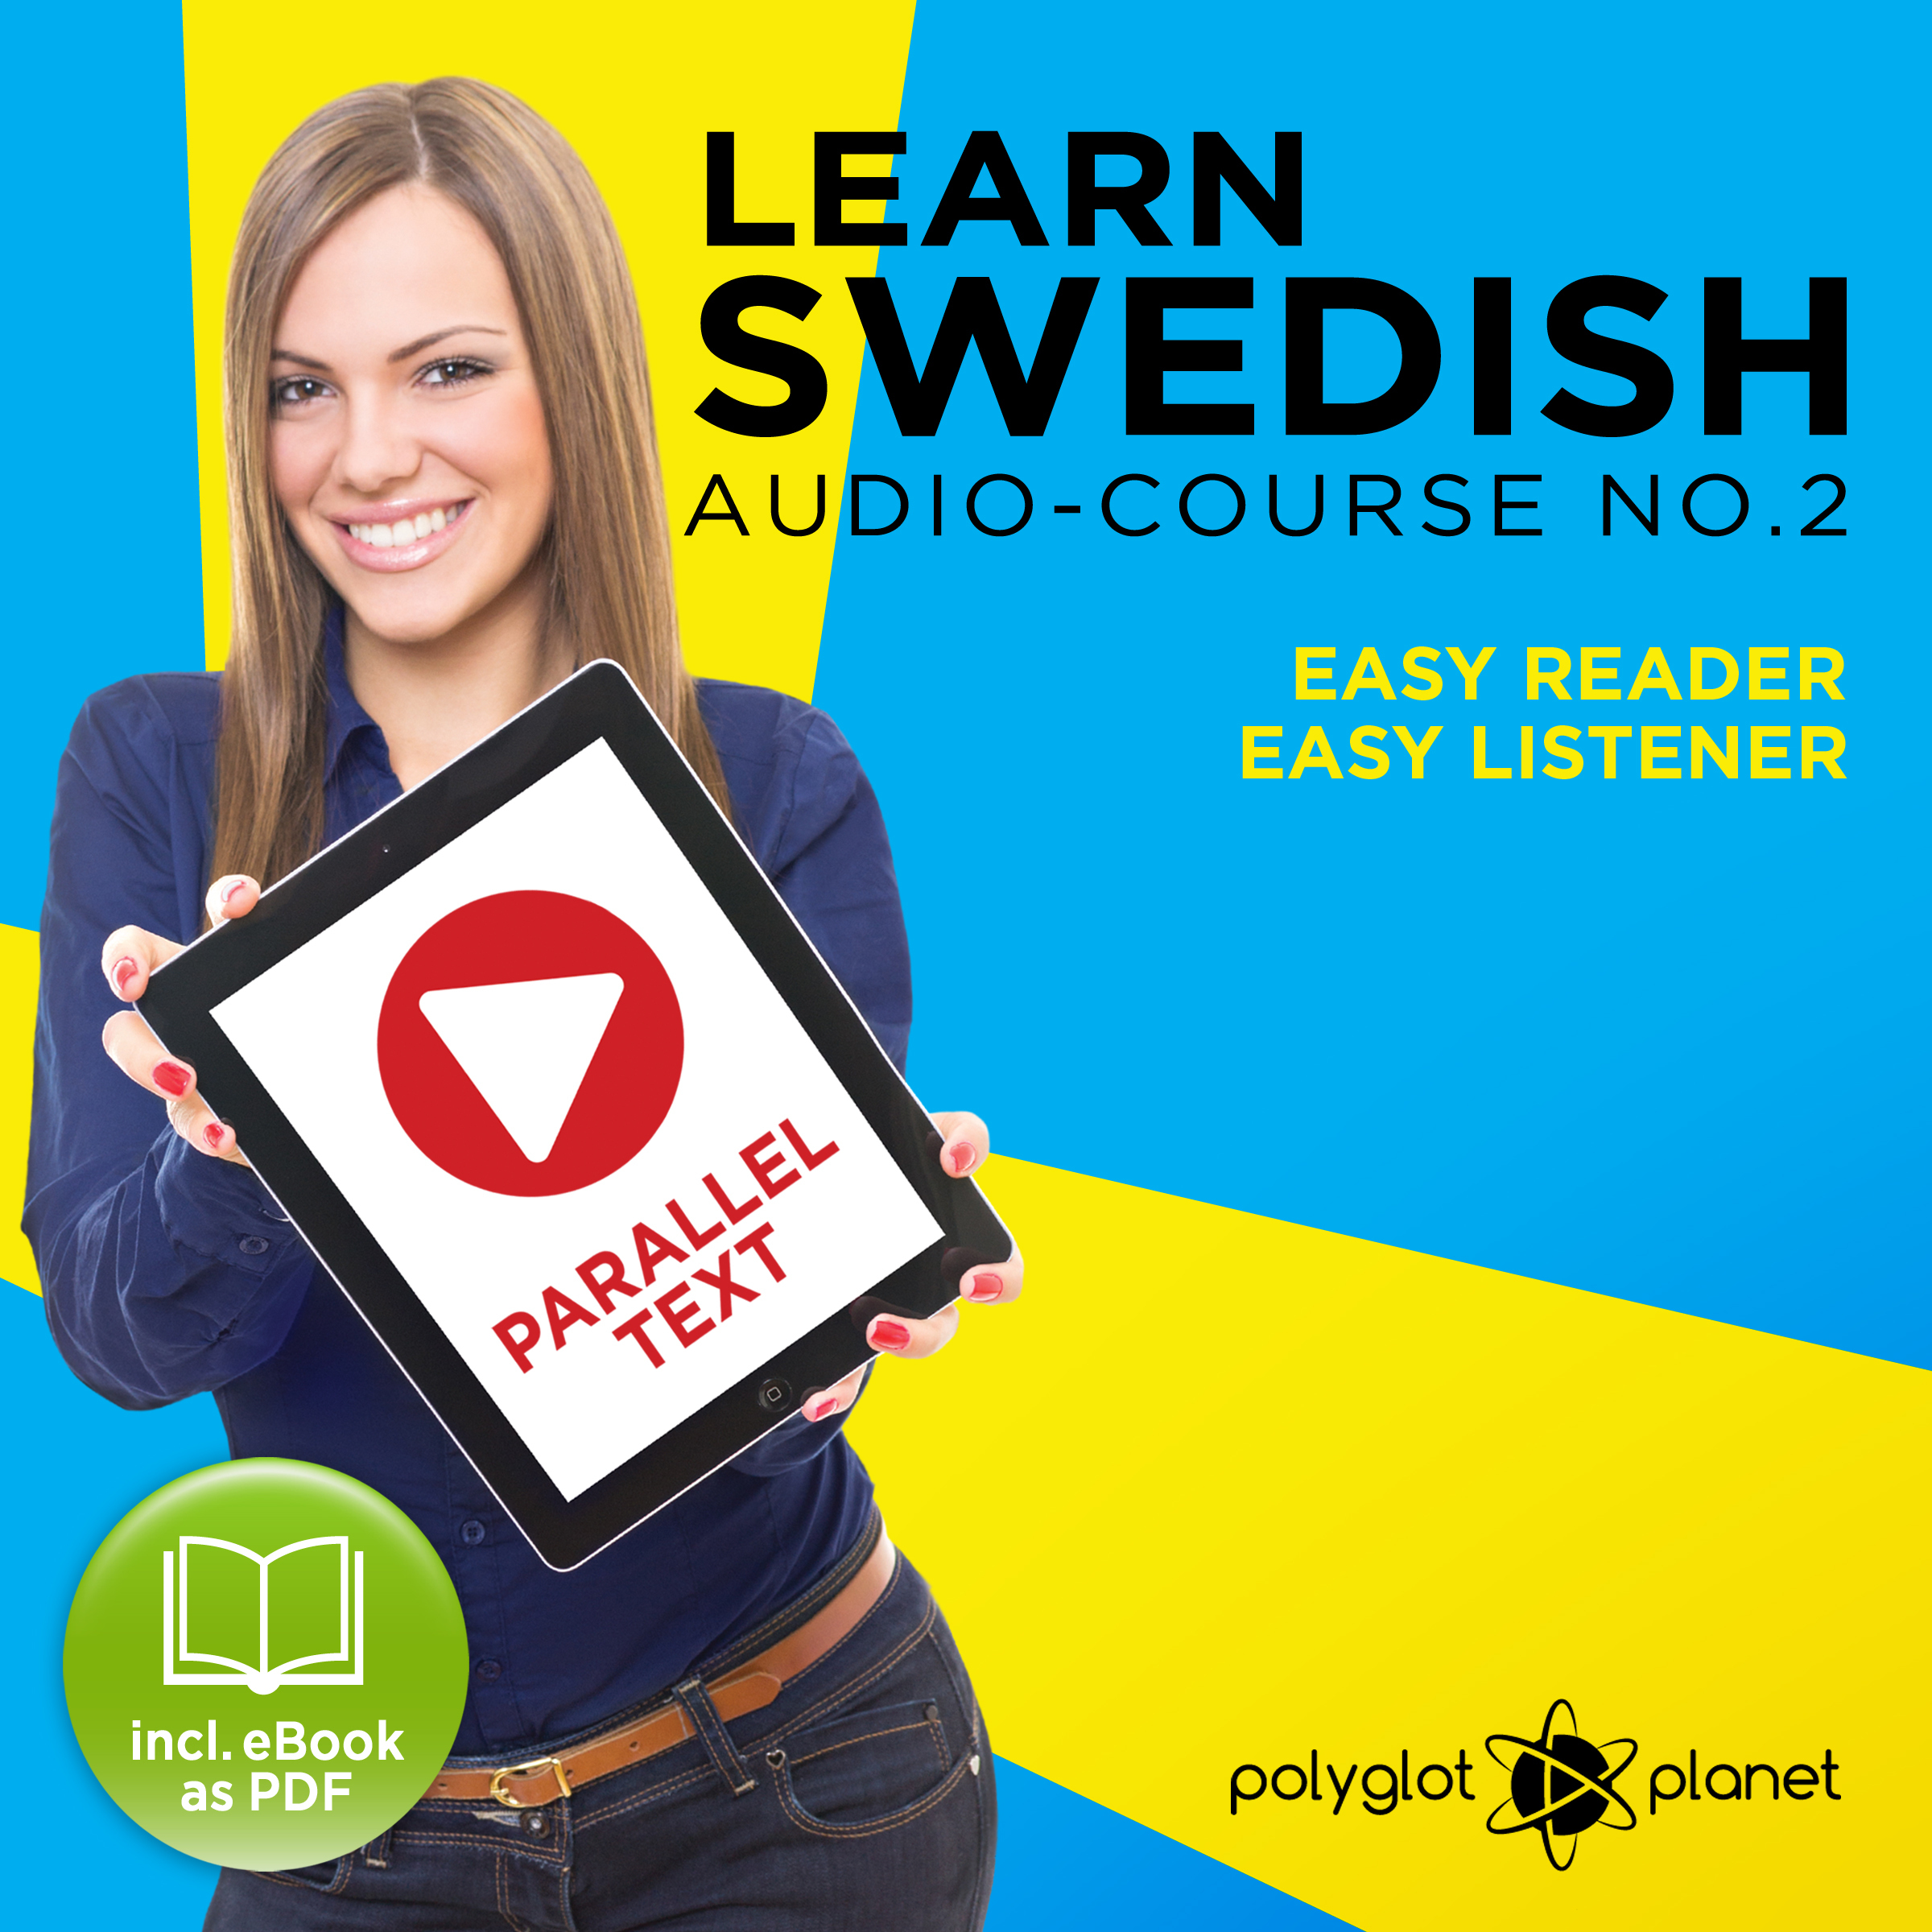 Printable Learn Swedish Easy Reader - Easy Listener - Parallel Text - Swedish Audio Course No. 2 - The Swedish Easy Reader - Easy Audio Learning Course Audiobook Cover Art